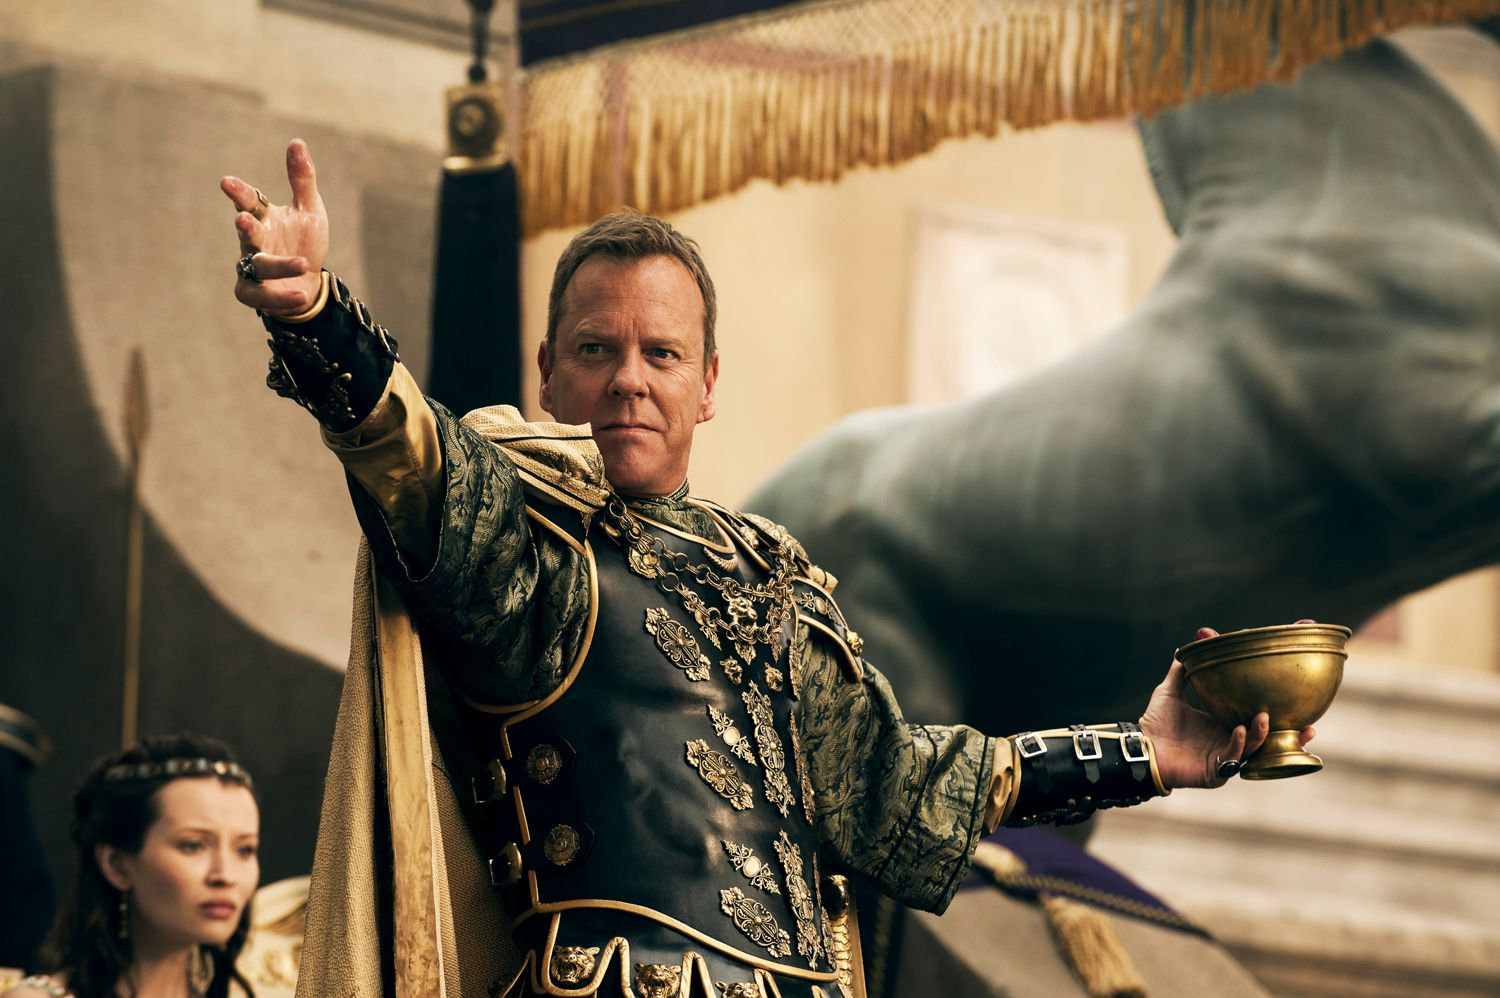 Kiefer Sutherland Talks Pompeii - 948.9KB